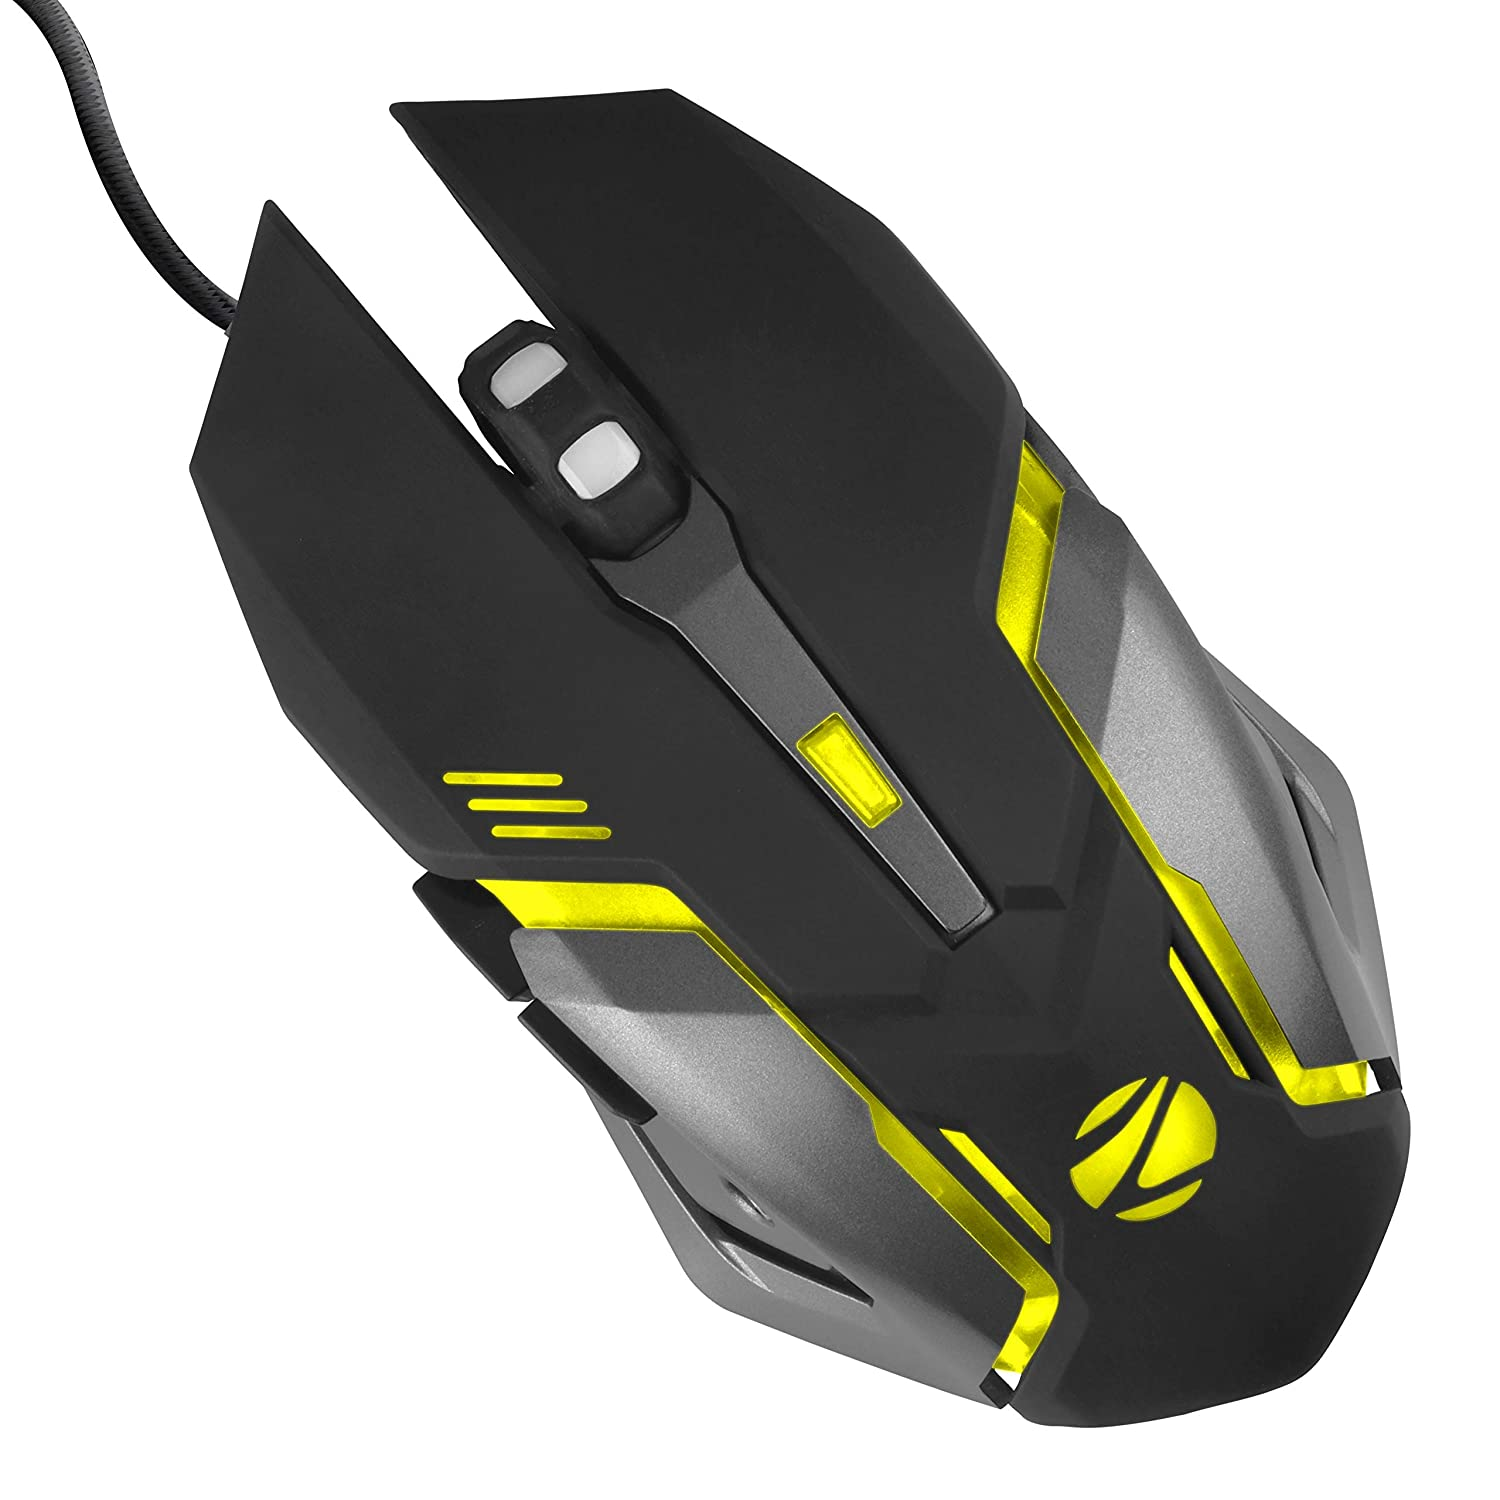 Best Gaming Mouse in India Under 1000